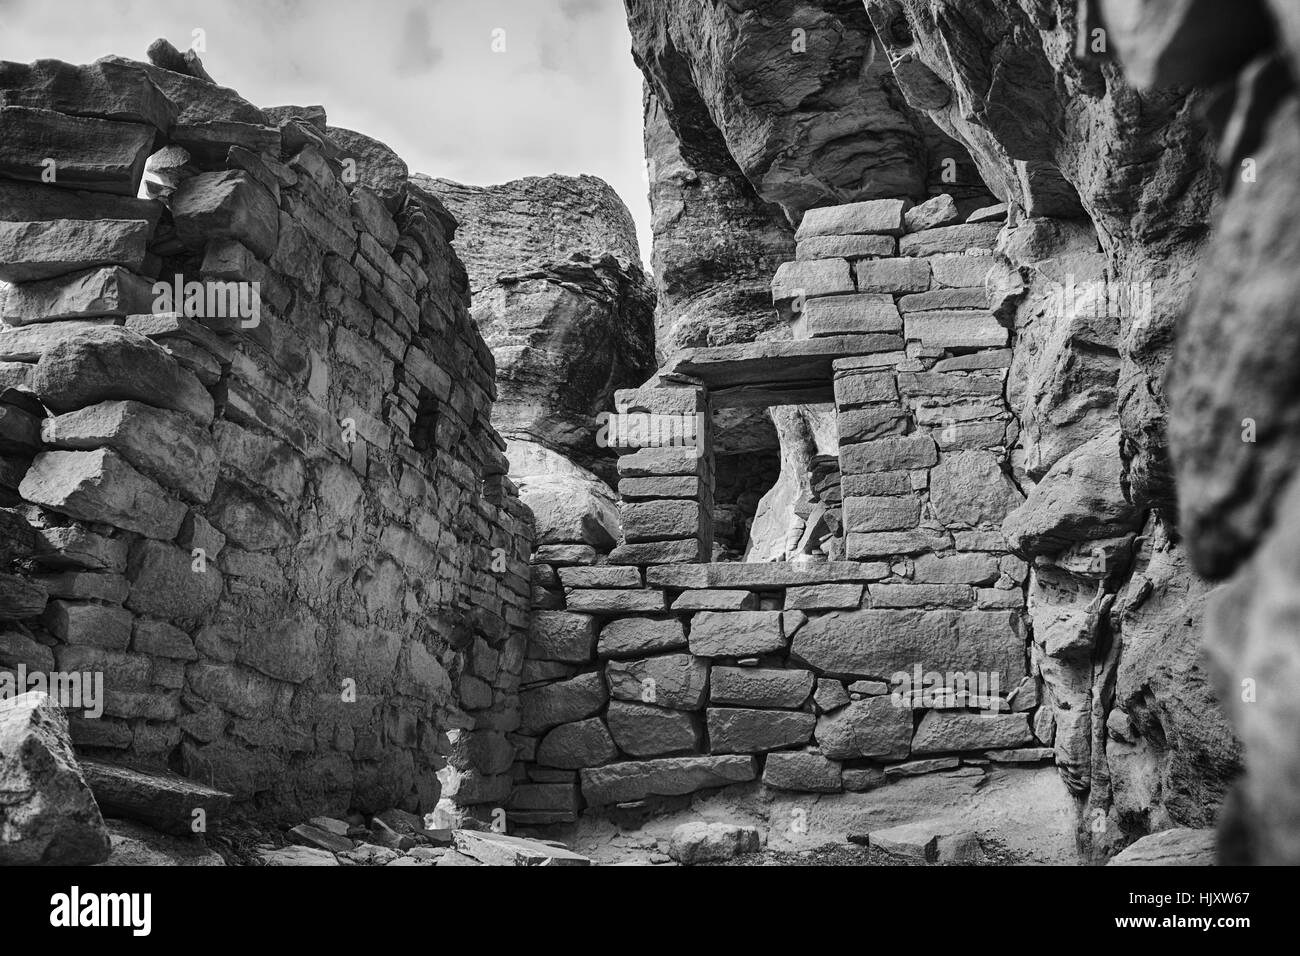 Looking into the remains of an Ancestral Puebloan room. Part of an ancient Anasazi pueblo. A  black and white photo. - Stock Image